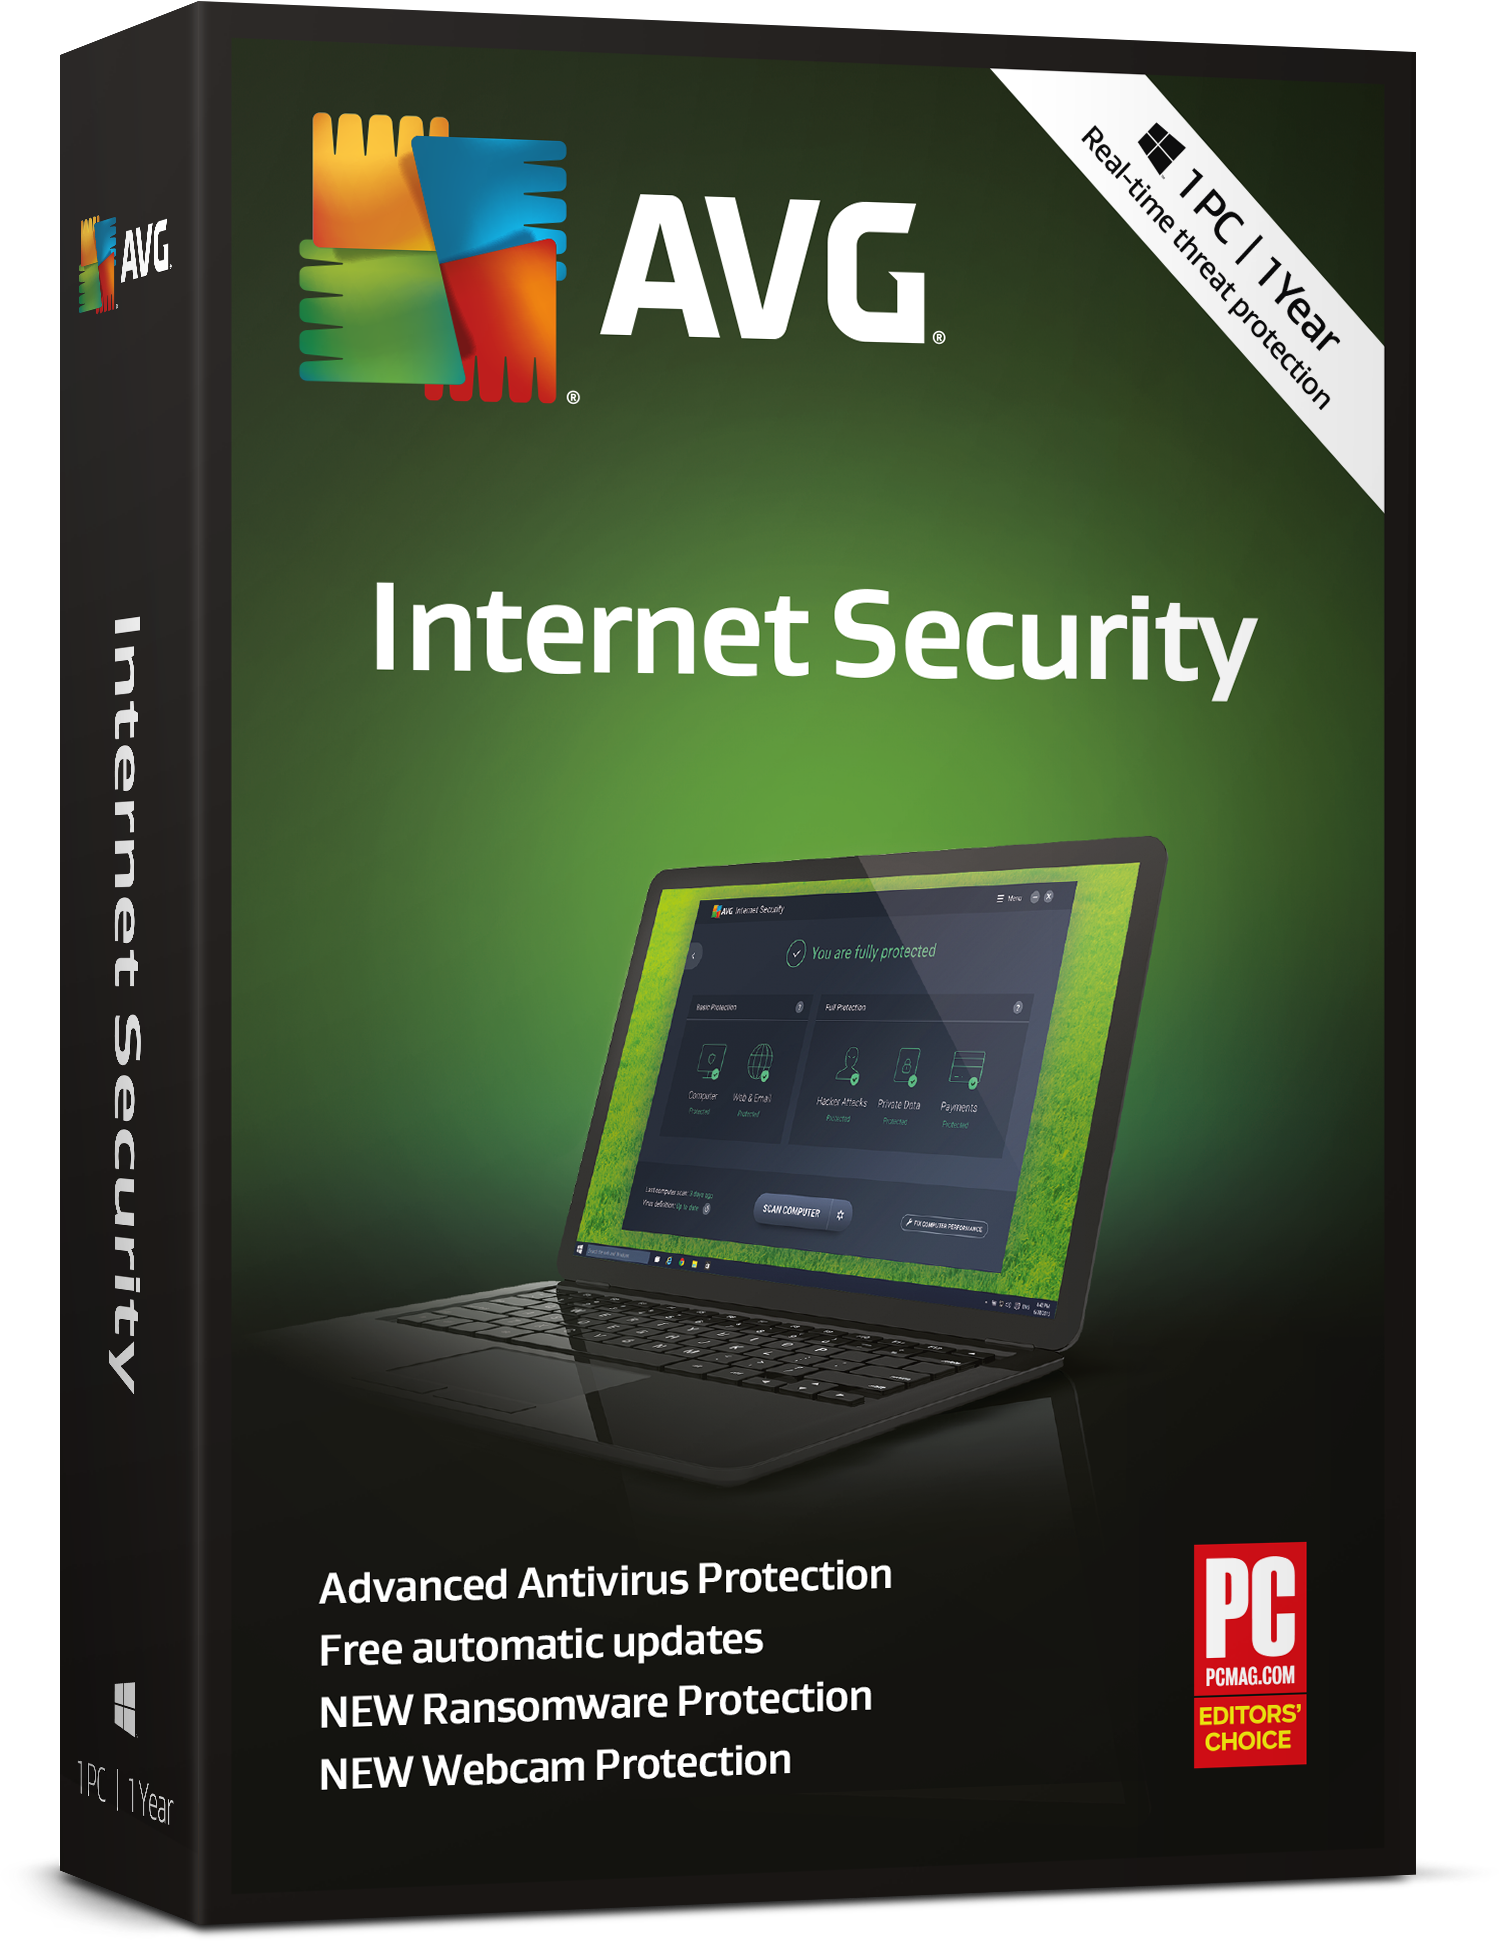 AVG Internet Security 1 Year License